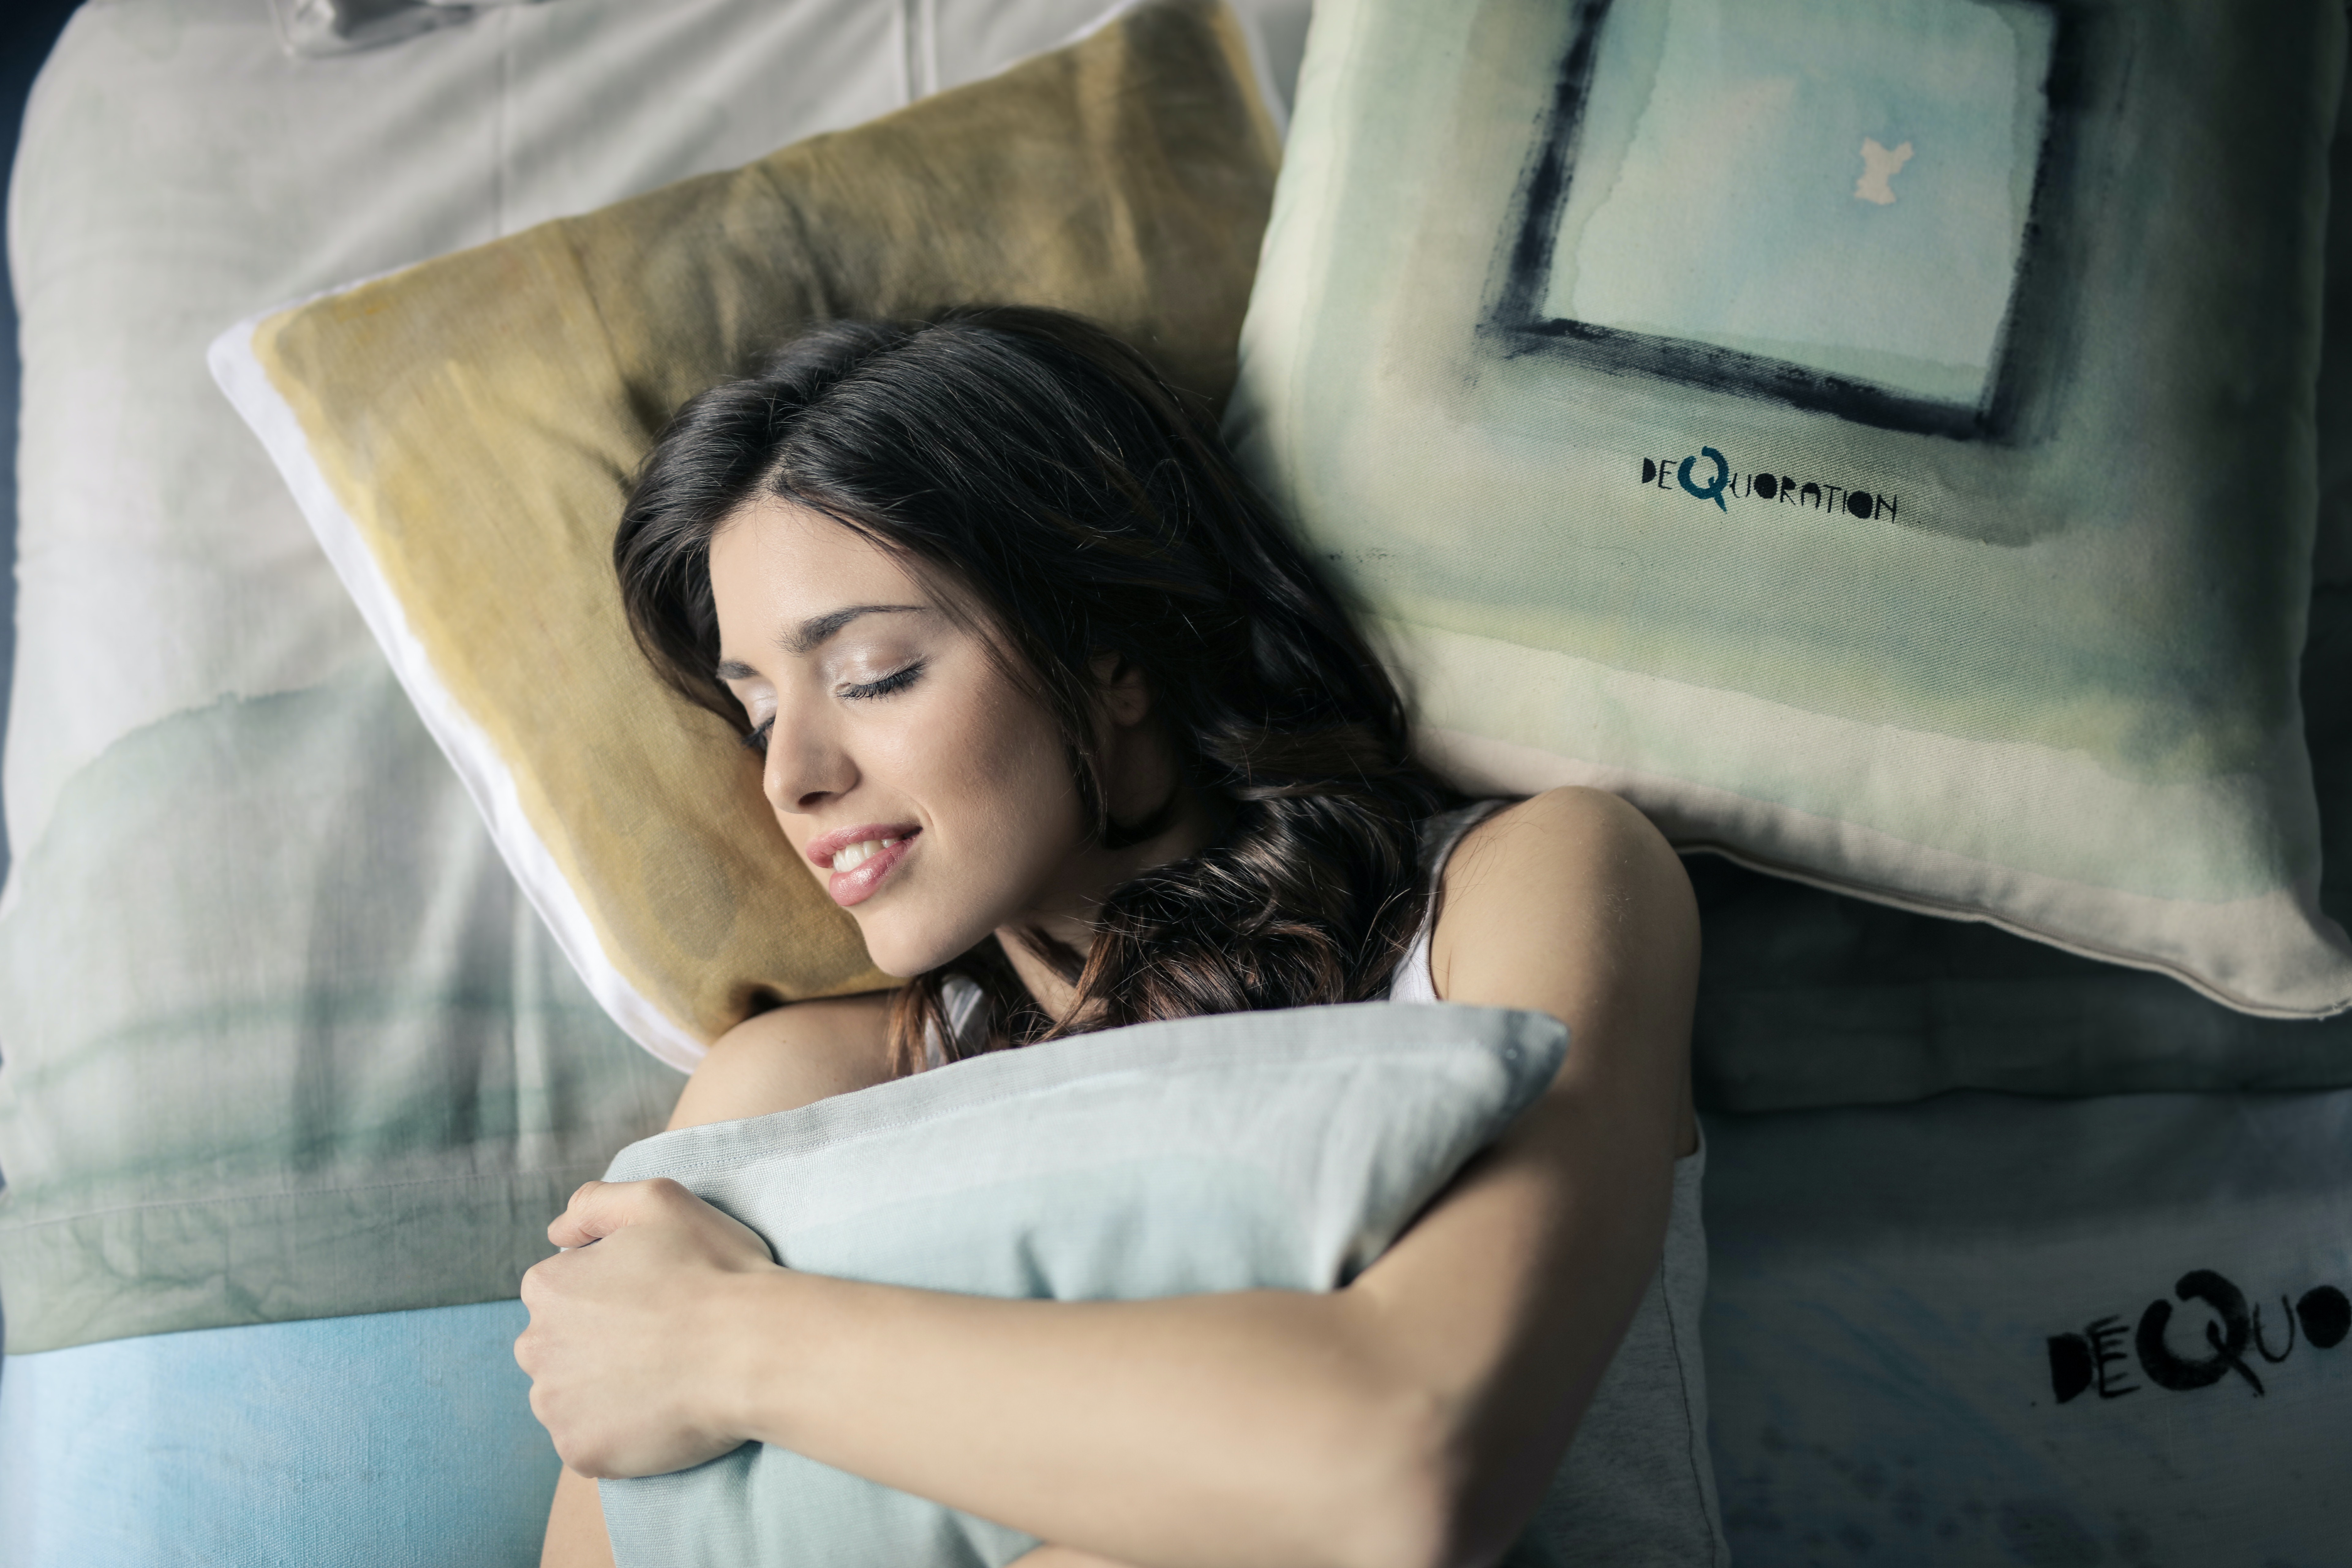 woman-wearing-white-tank-top-sleeping-on-gray-and-white-920380